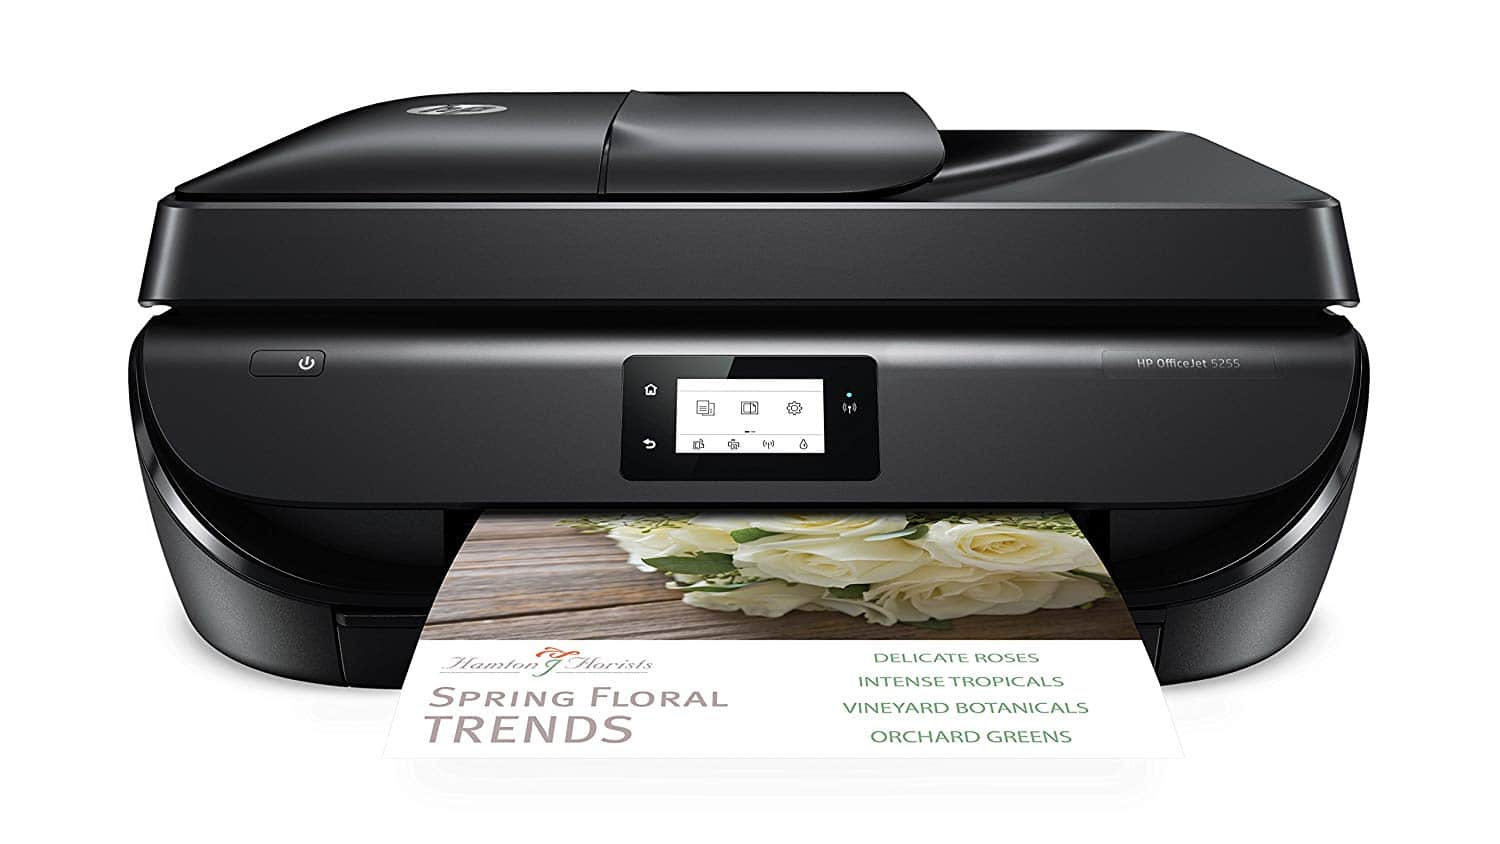 HP OfficeJet 5255 Wireless All-in-One Printer $73.99 + Free shipping w/ Prime